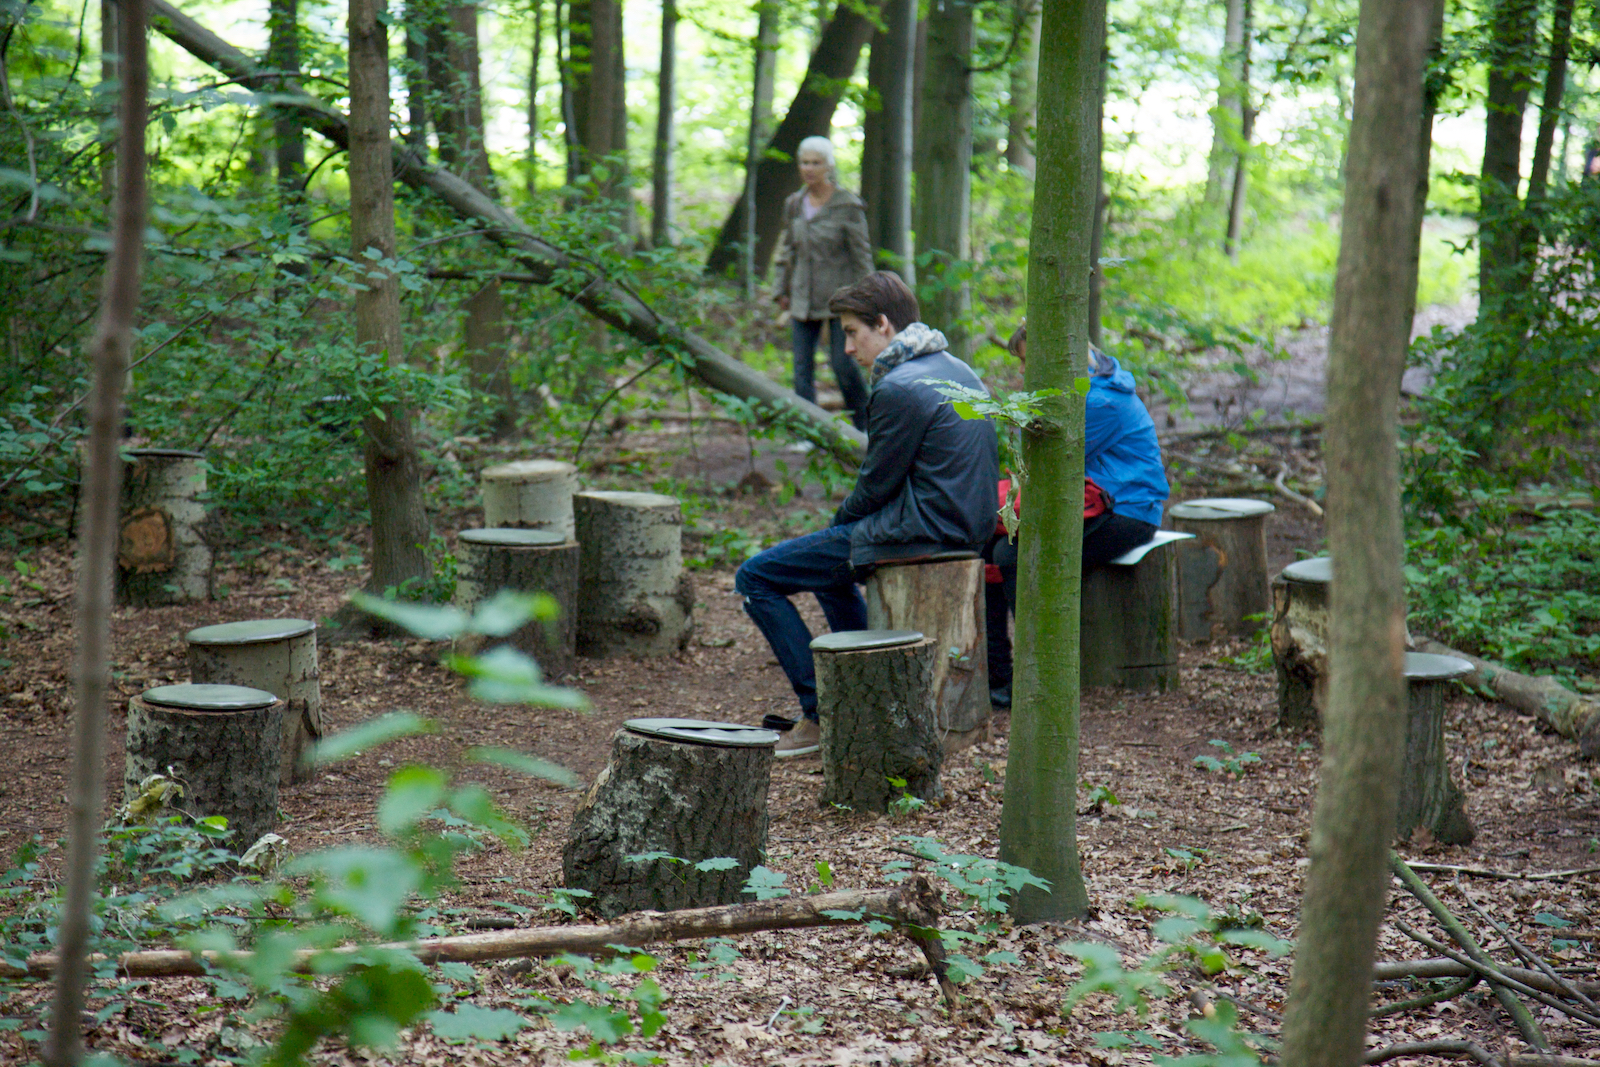 Janet Cardiff George Bures Miller FOREST For A Thousand Years